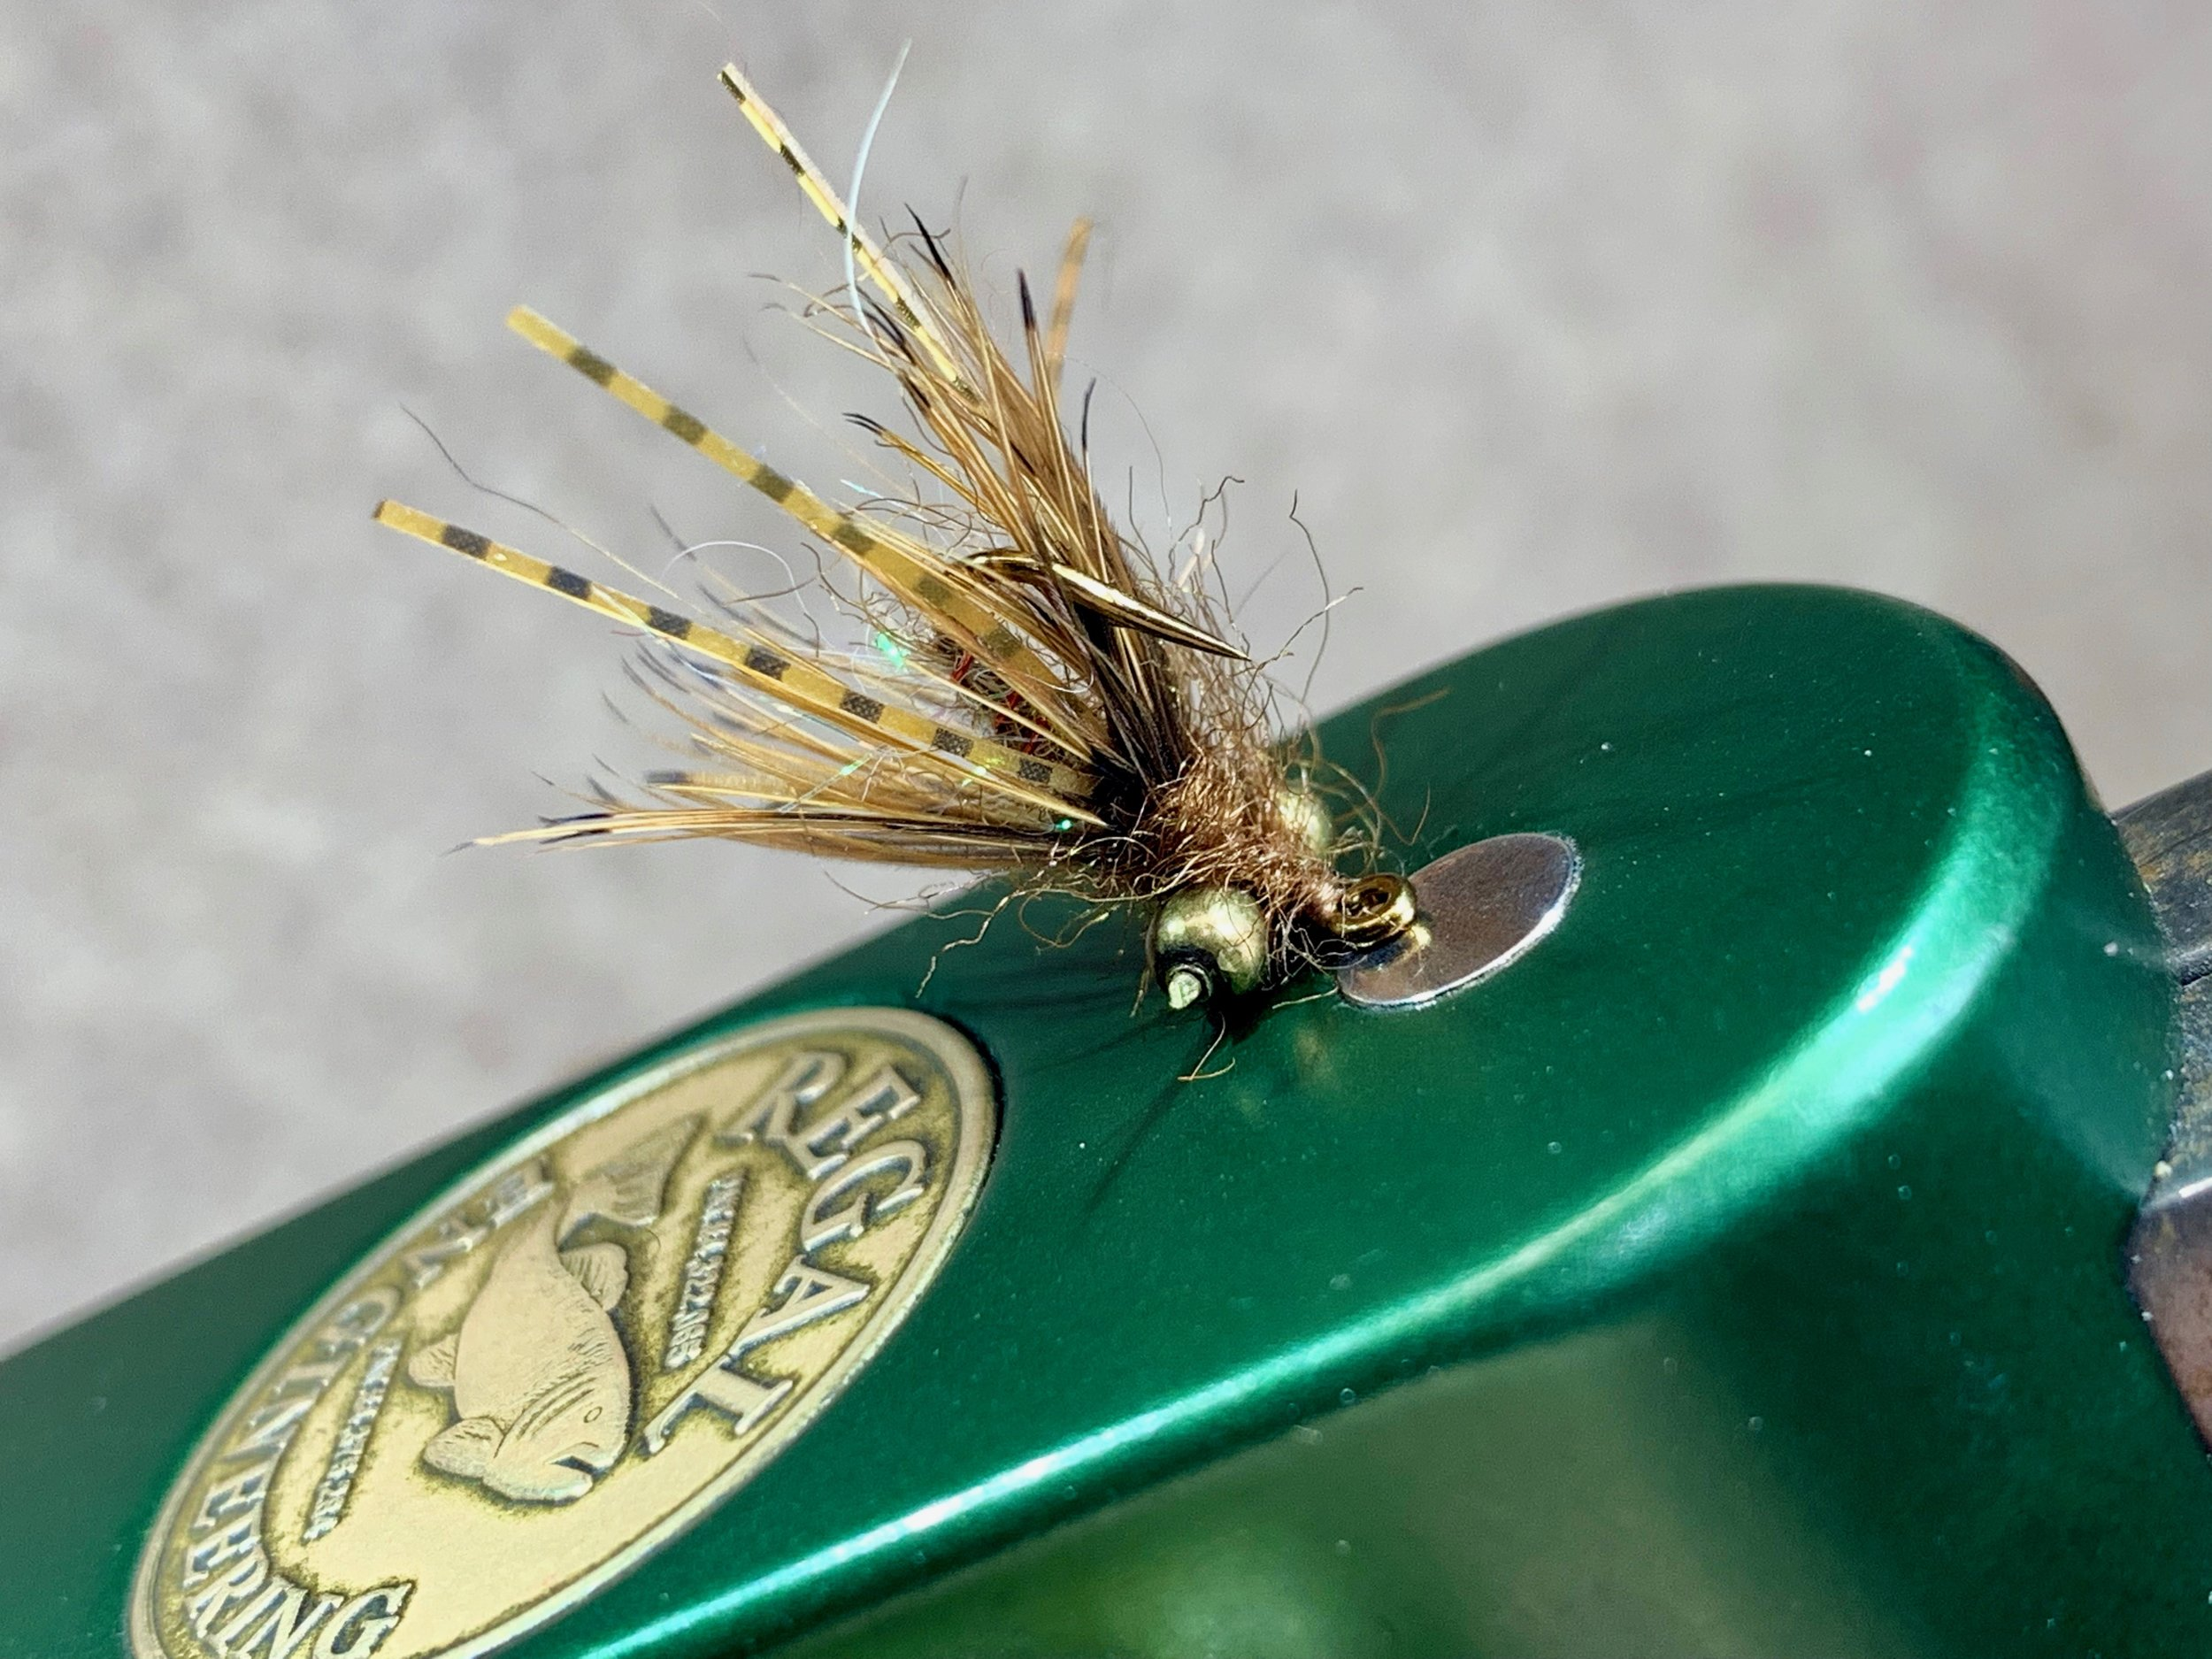 A pint sized Carp Nasty is a great fly for bluegill and other panfish!